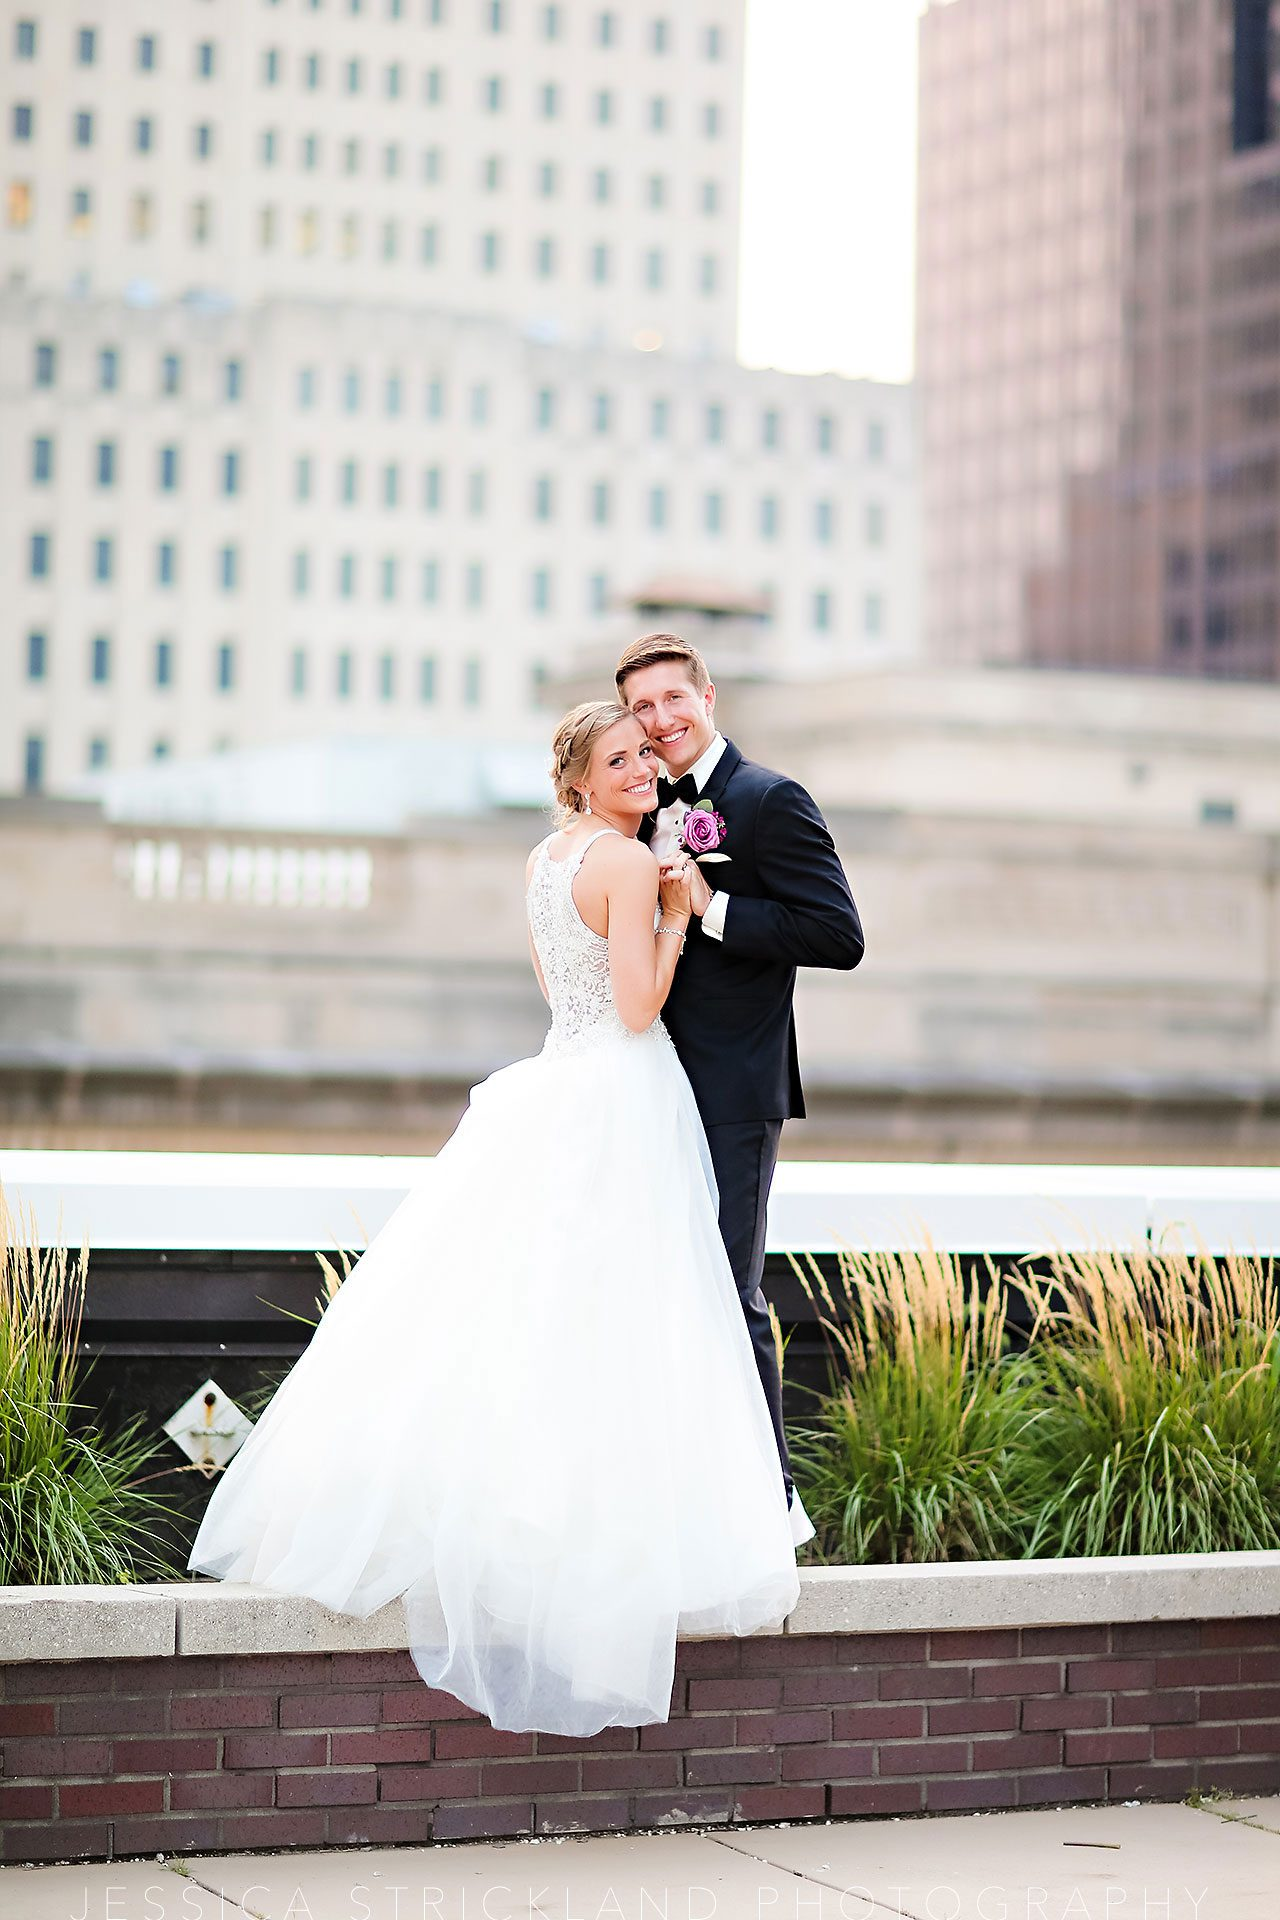 Serra Alex Regions Tower Indianapolis Wedding 336 watermarked